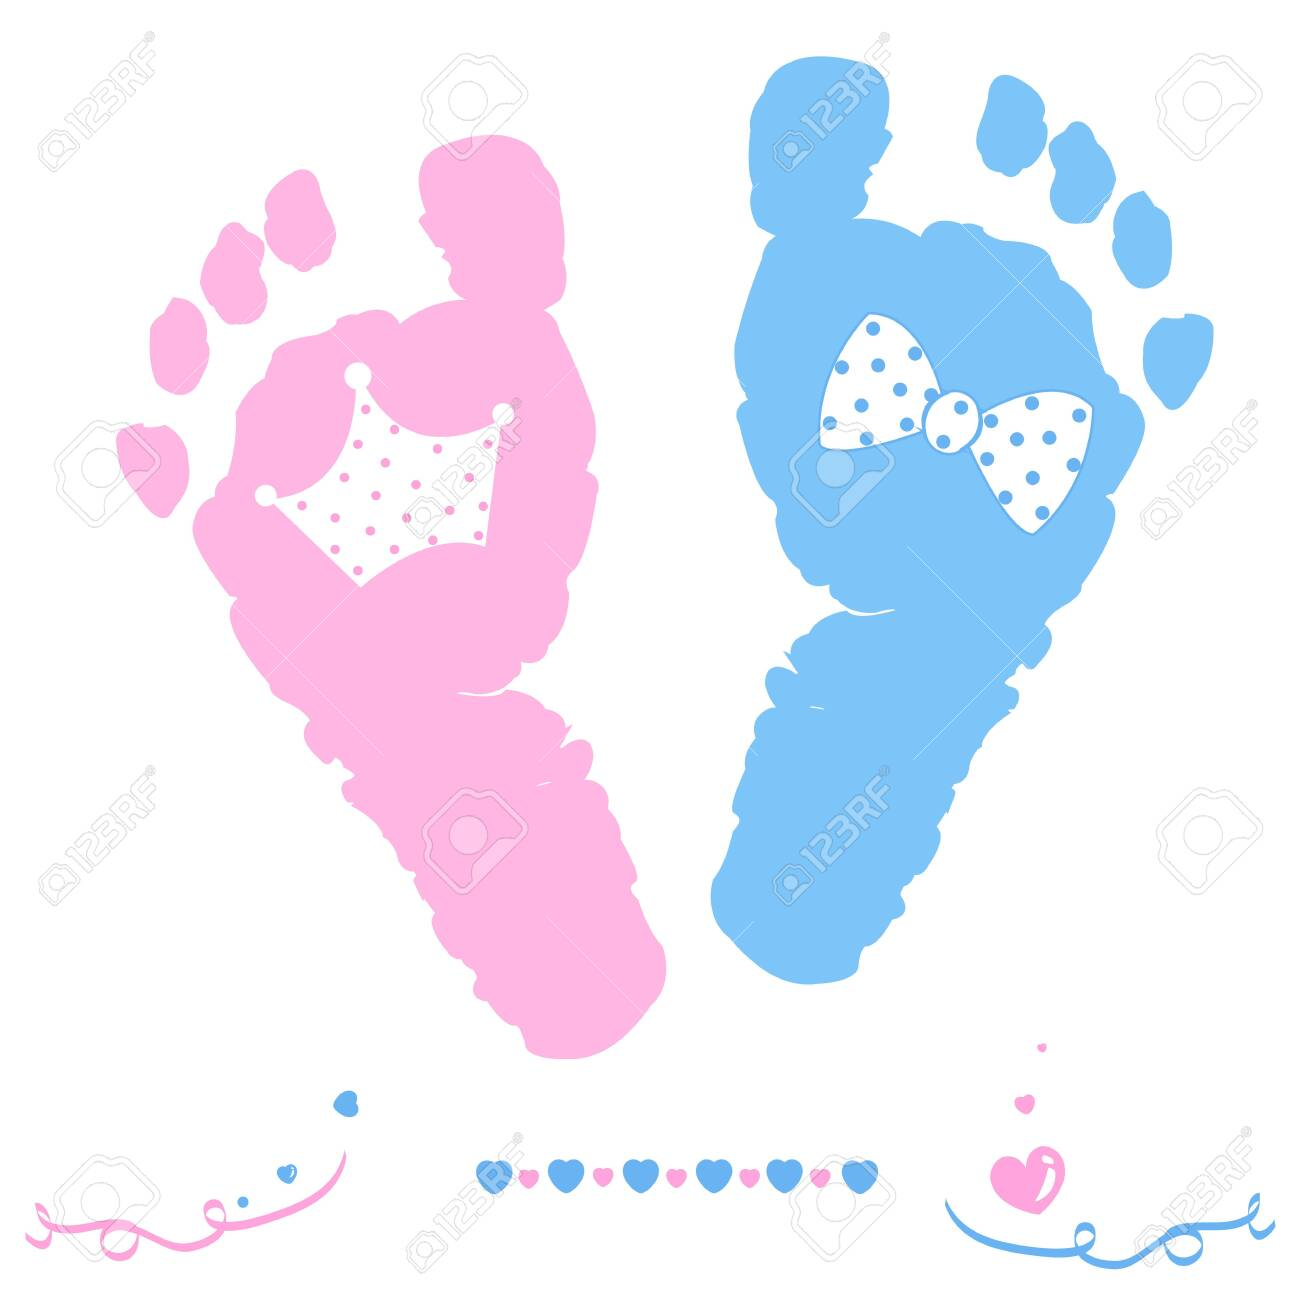 Twin baby girl and boy feet prints arrival greeting card with crown and tie bow vector - 148670519